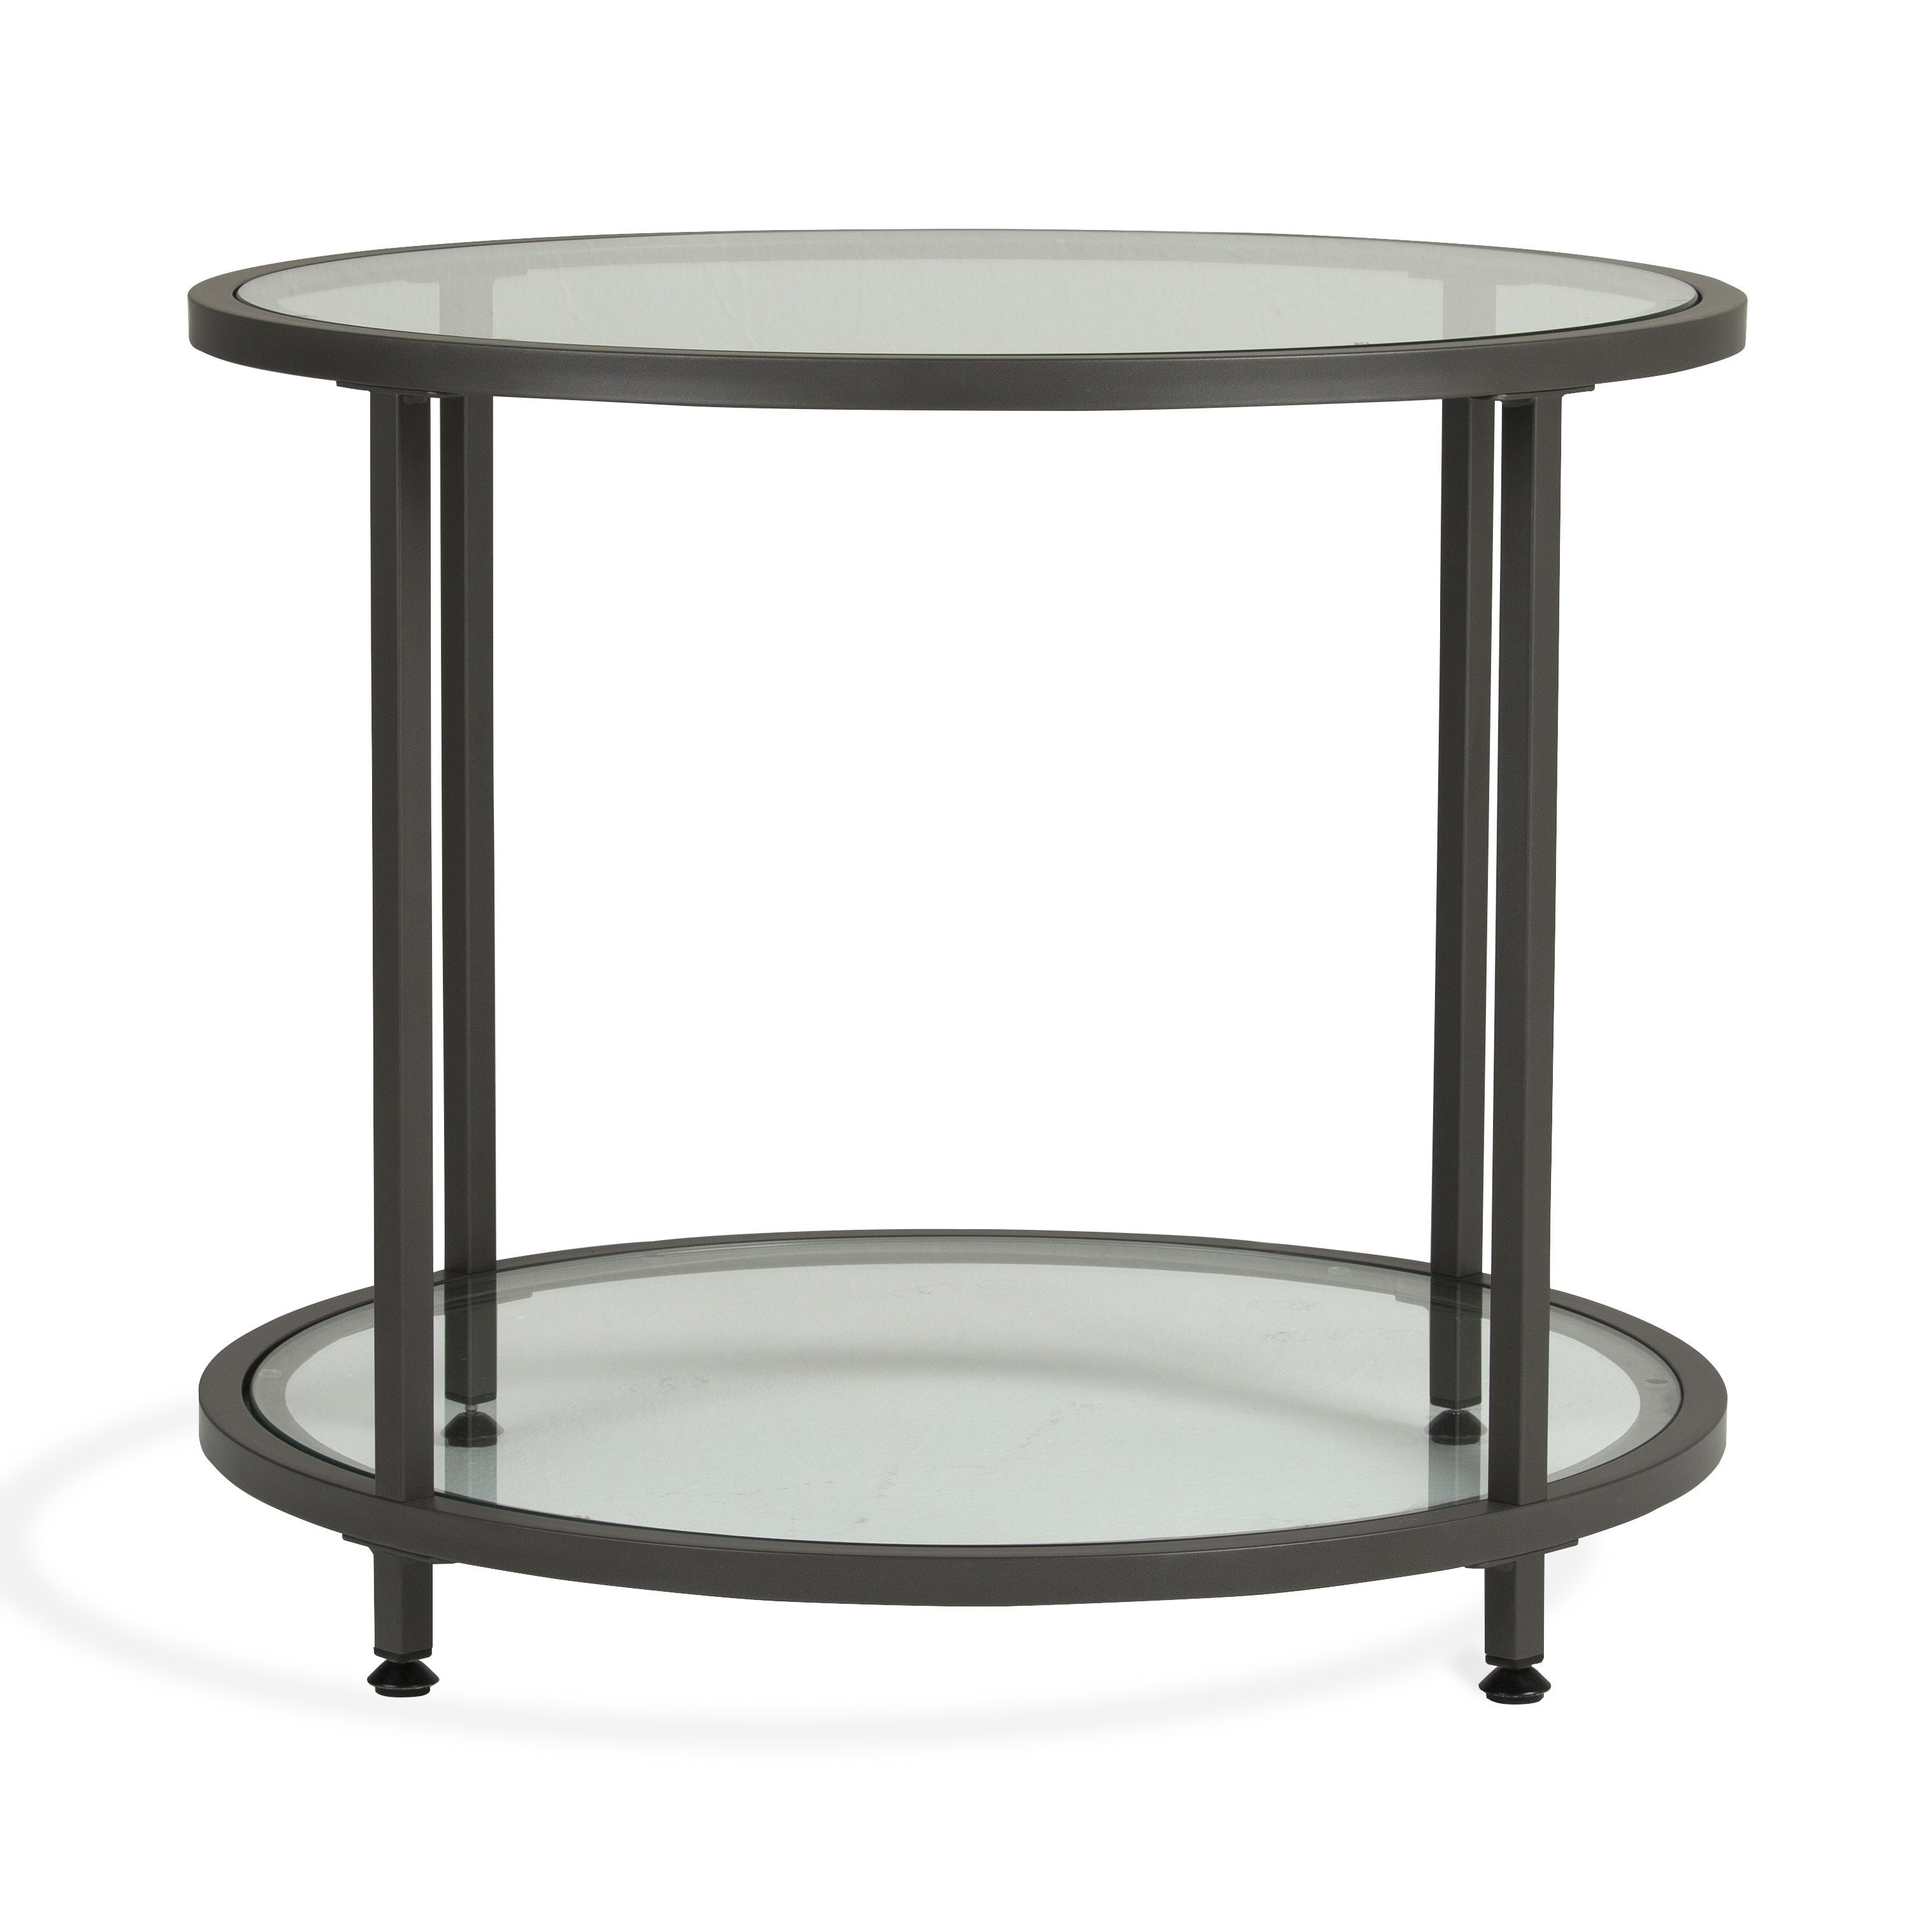 chairs damien tables image white side by design table black round outdoor wireworks